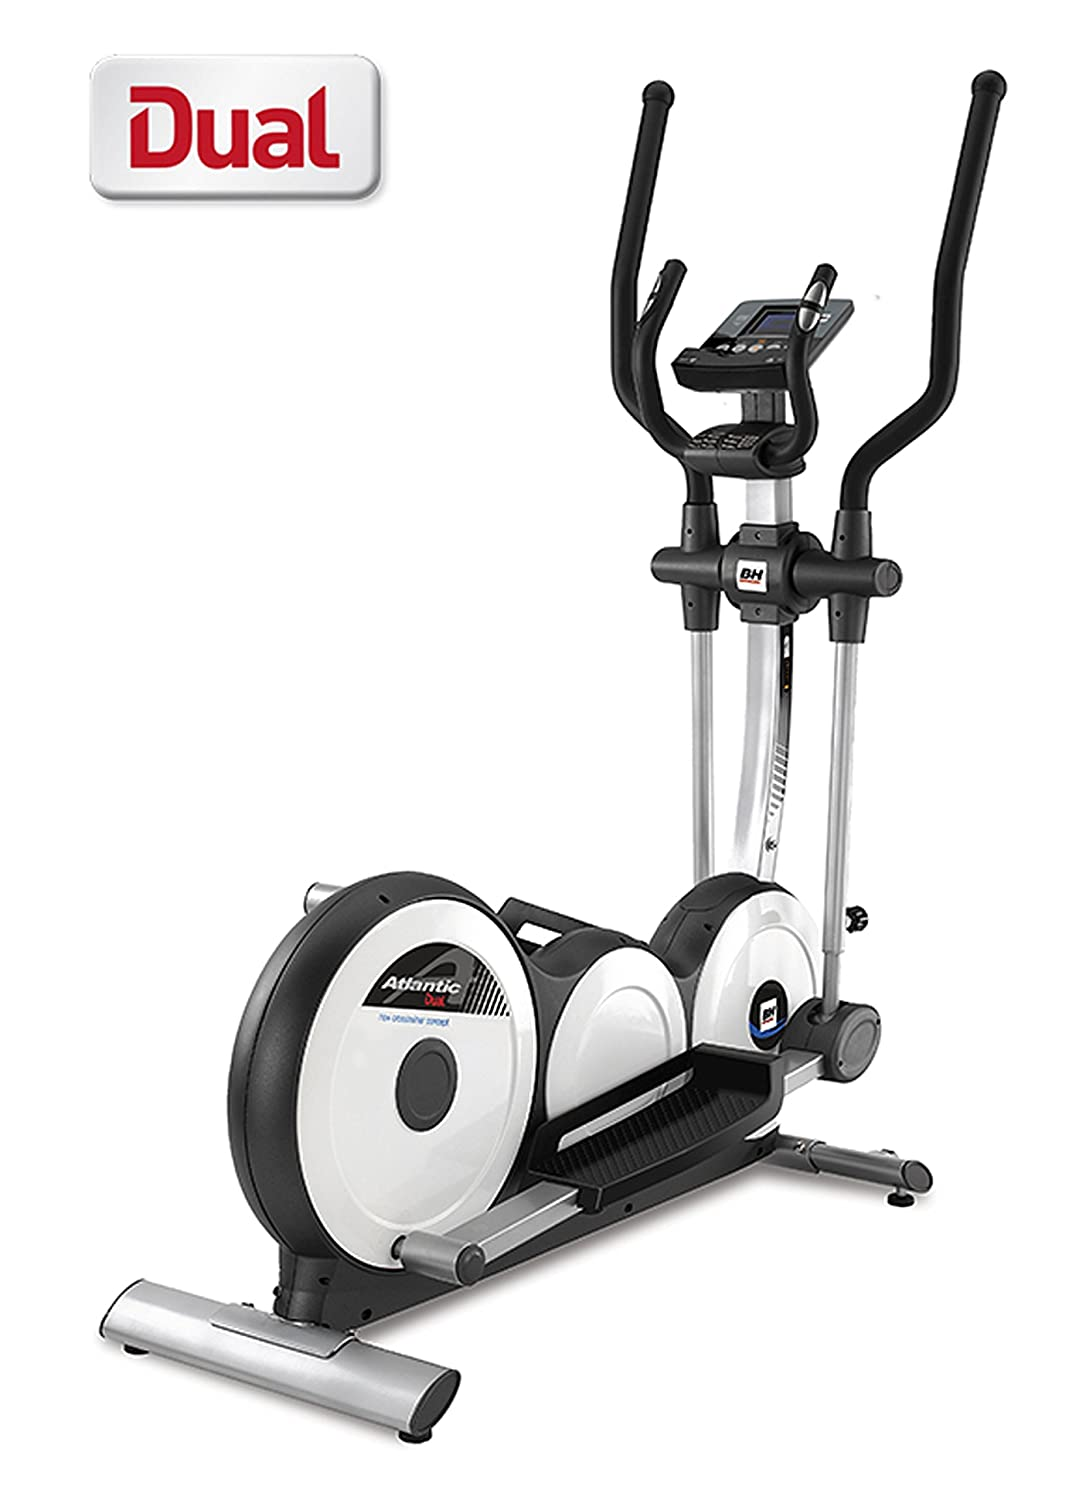 BH Fitness Atlantic Dual Ellipticals